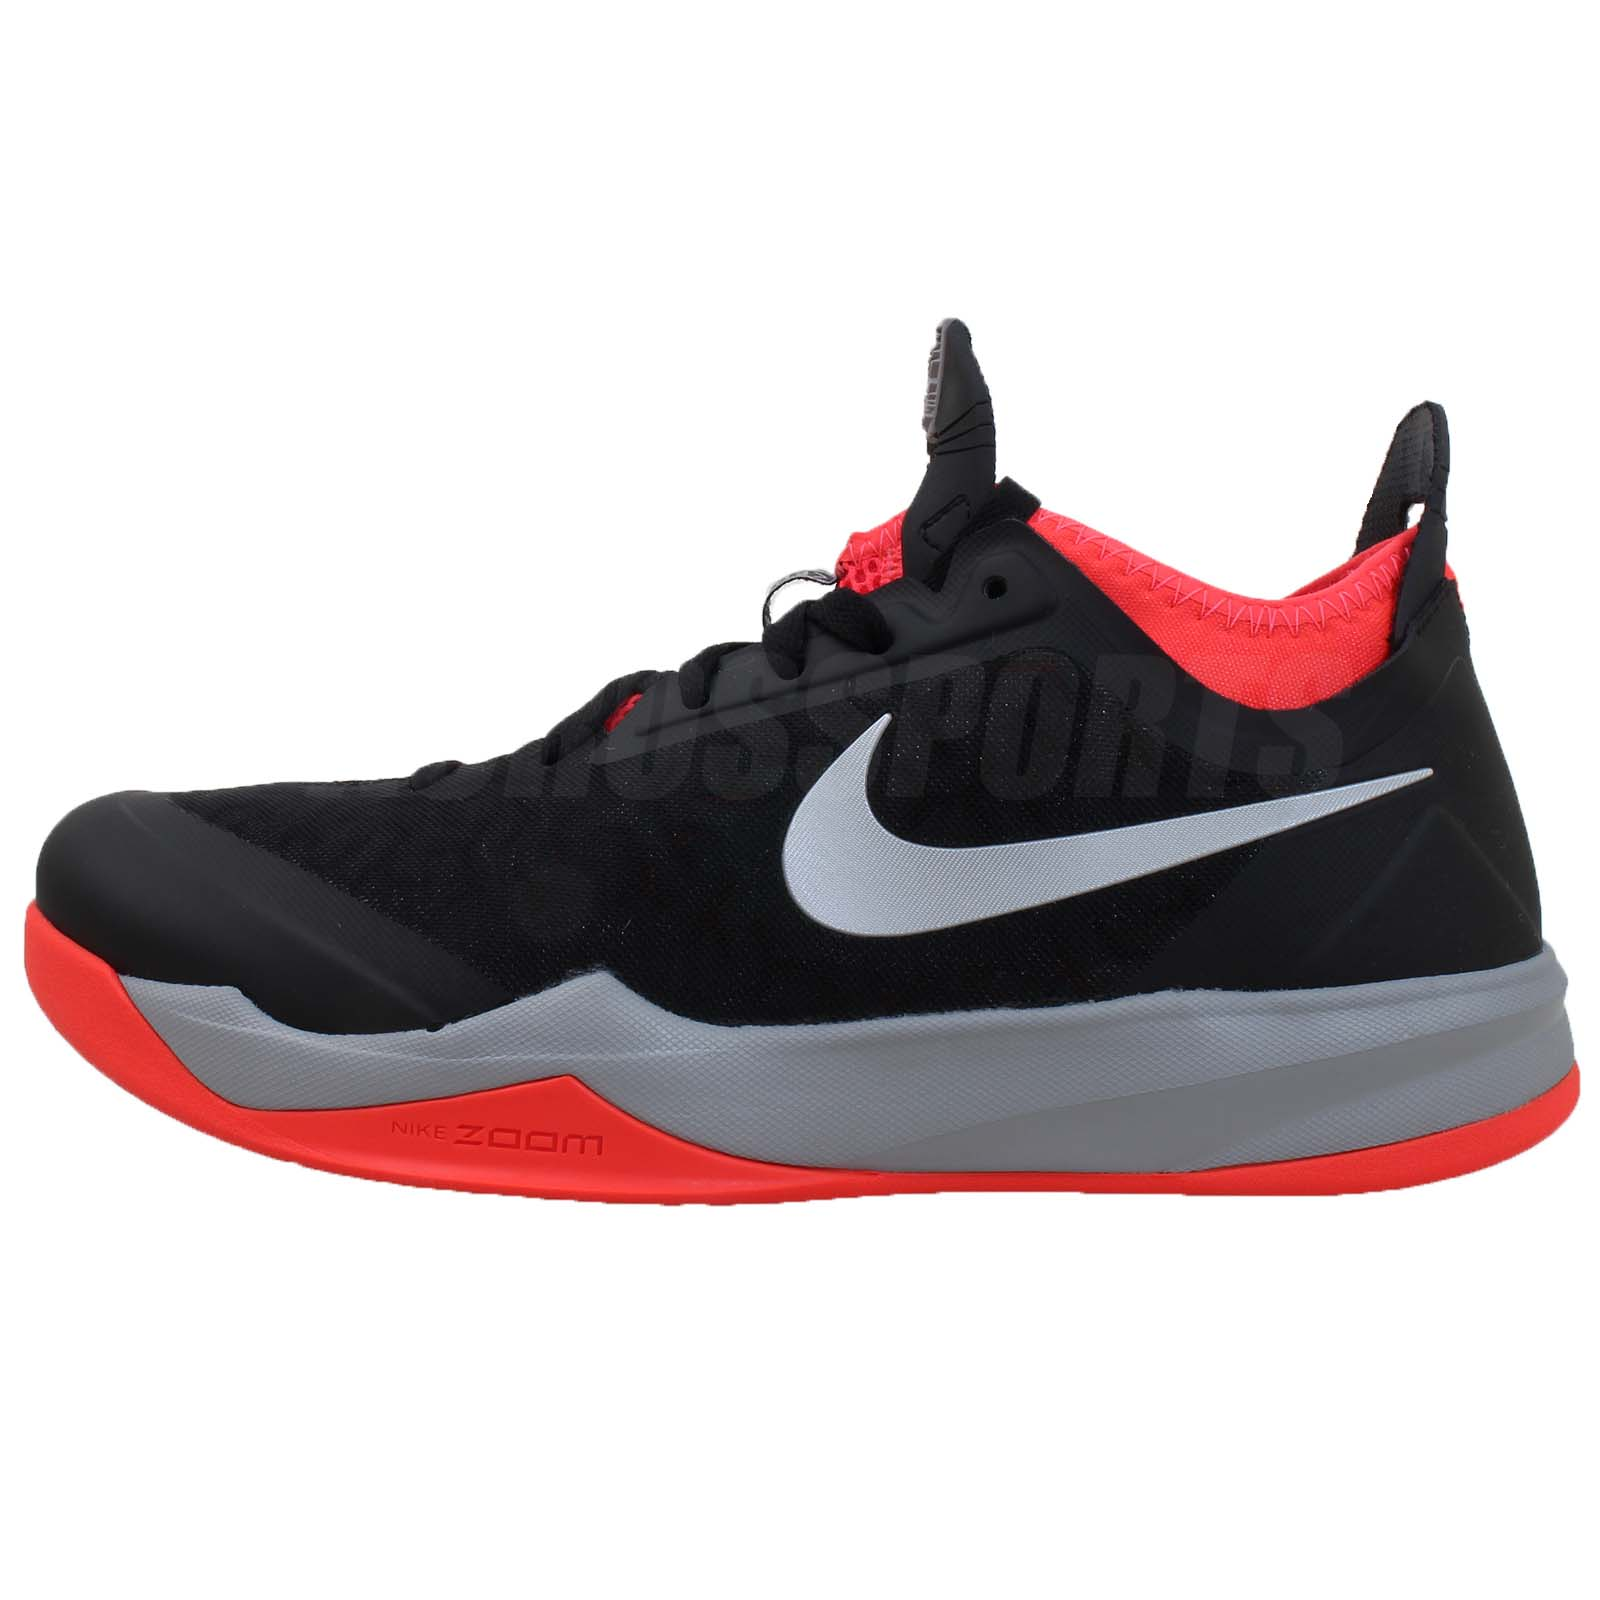 nike basketball shoes new arrival 2014 santillana